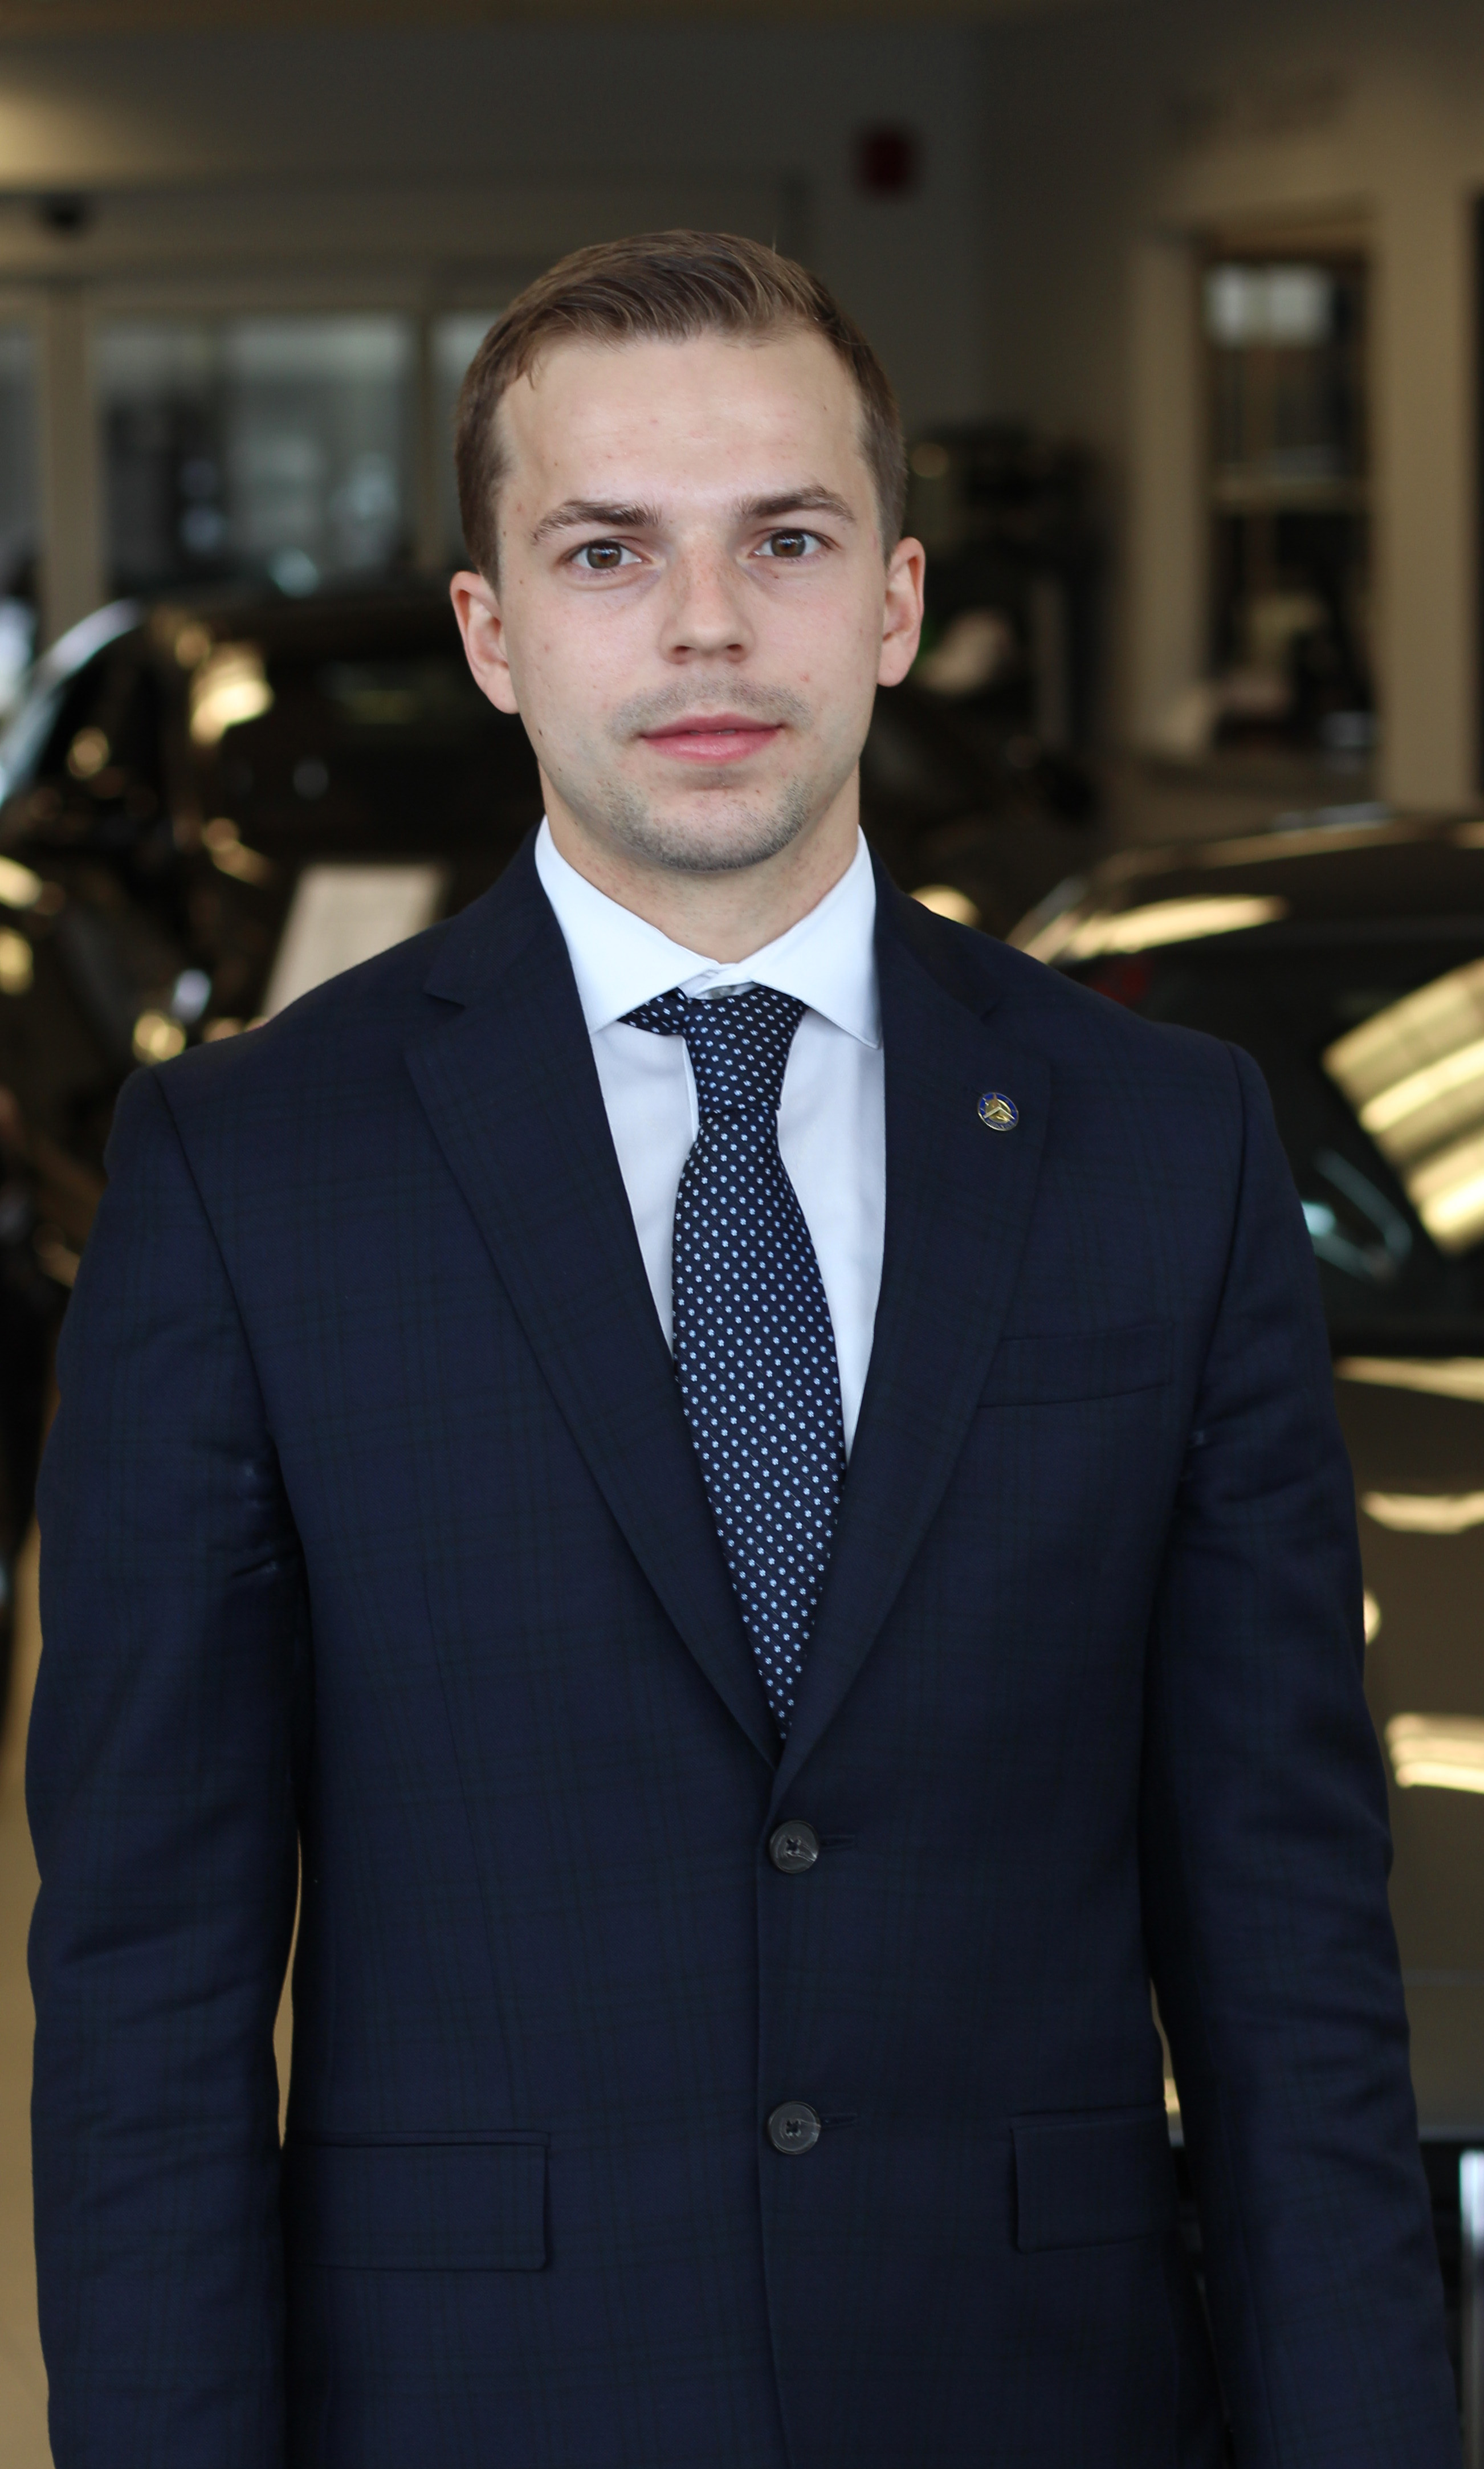 Michal Grzesniak - Sales & Leasing Consultant